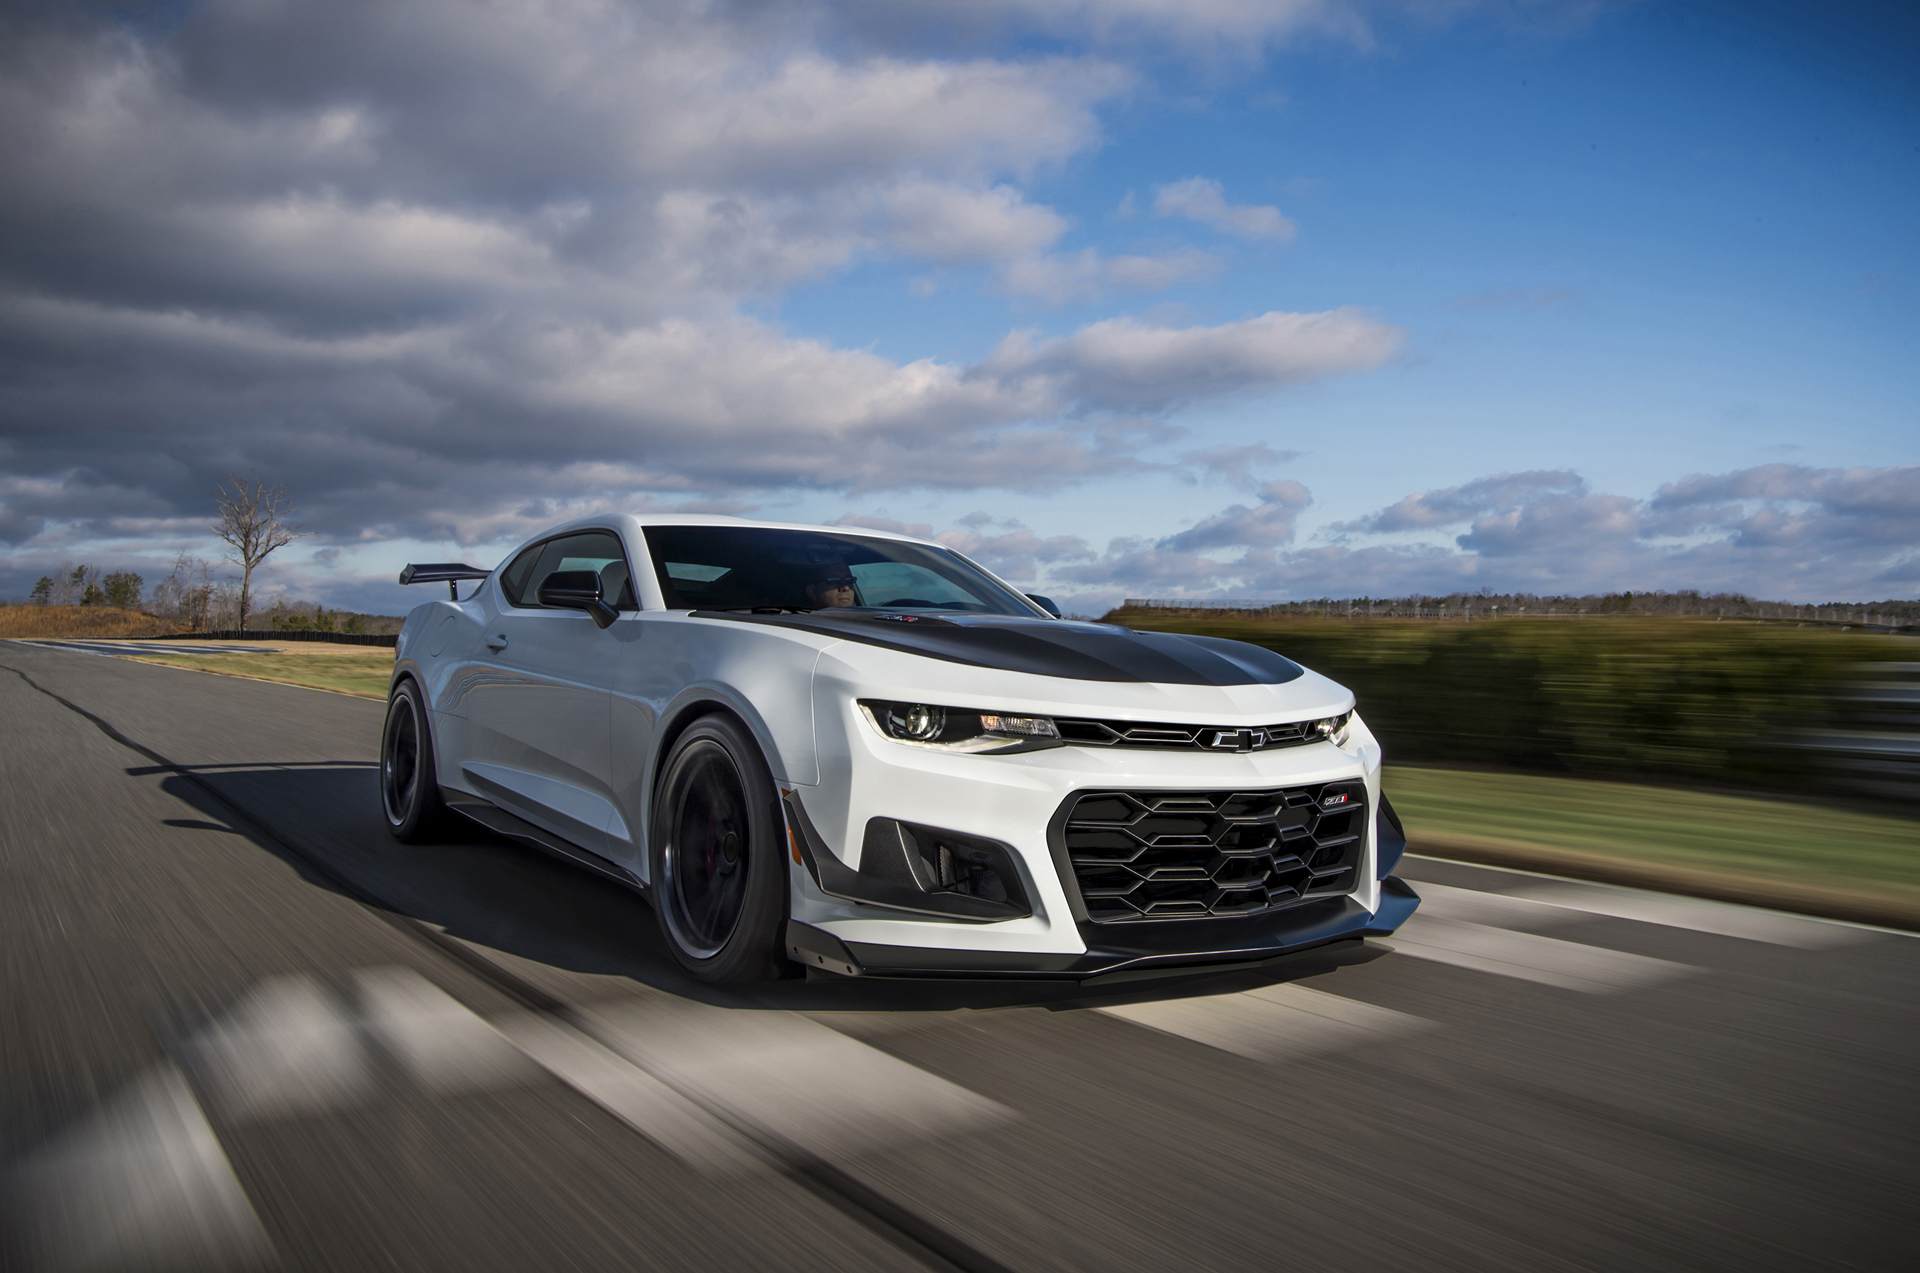 Chevy Camaro May Be Discontinued After 2023 2021 Chevrolet Camaro Zl1 Mpg, Near Me, Pictures